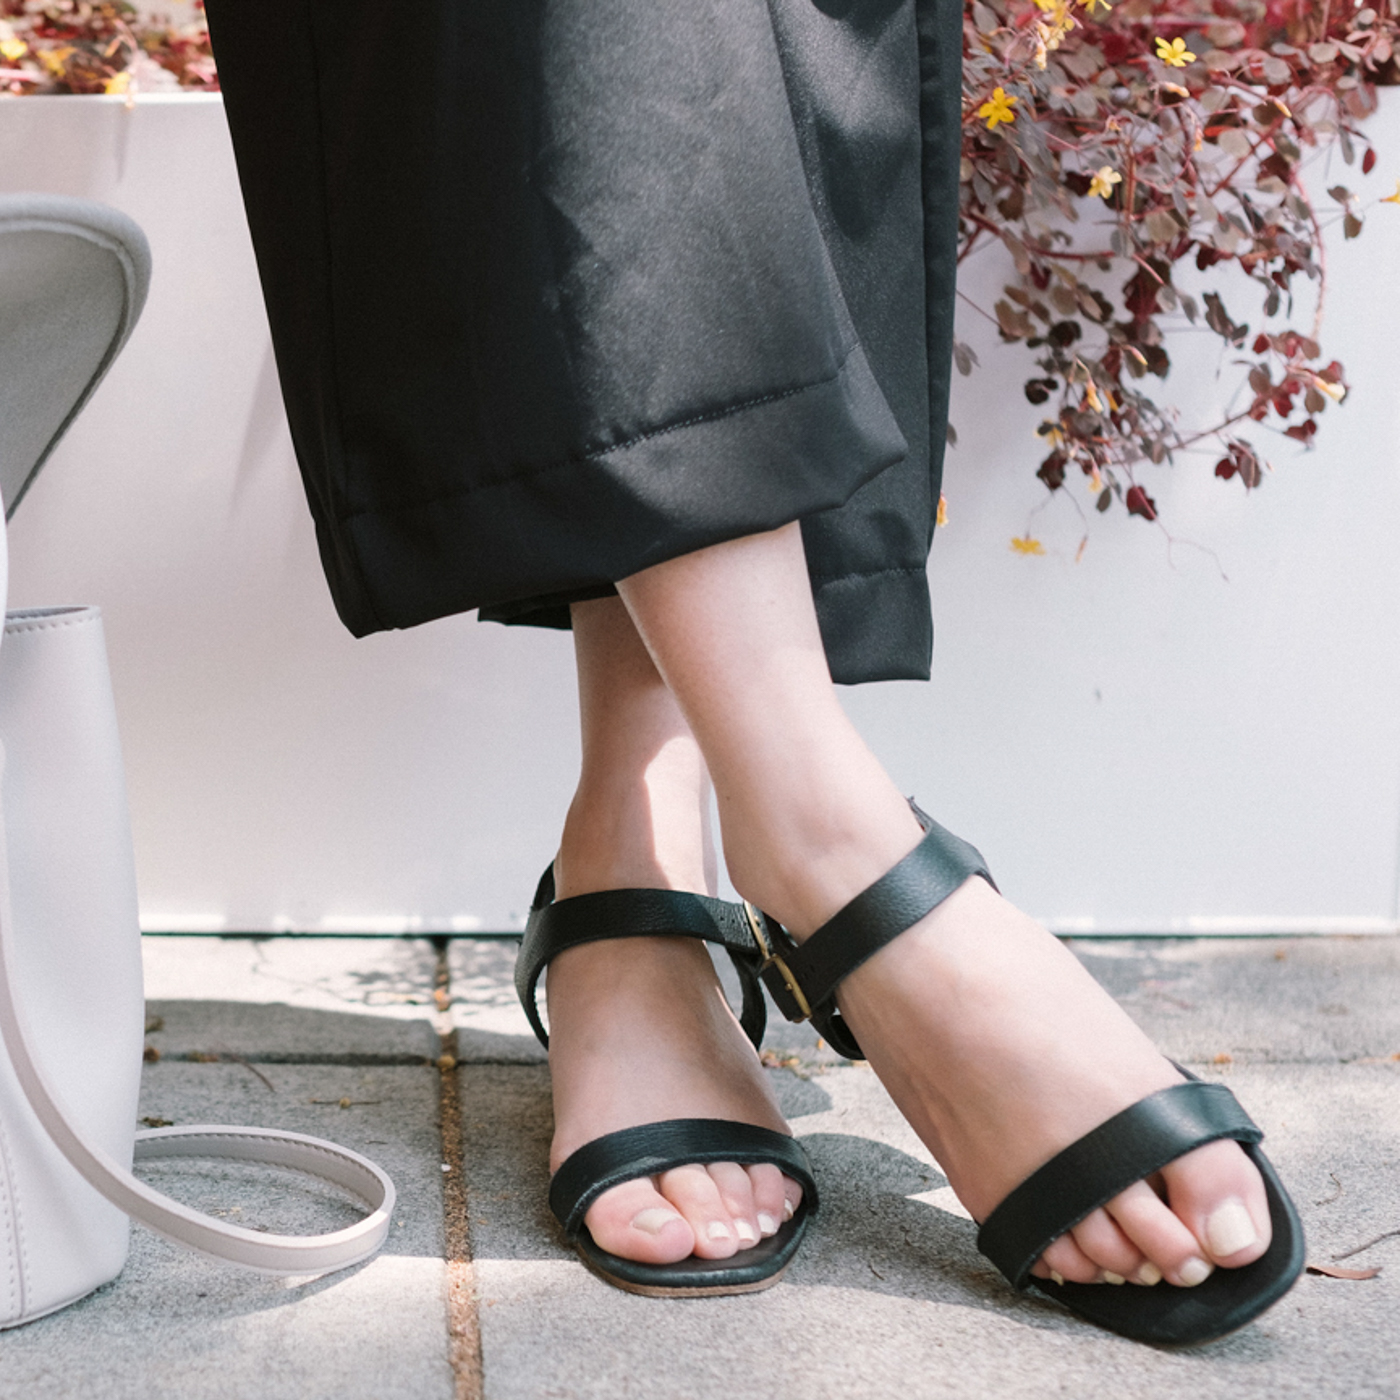 St. Agni     •     Ankle Strap Sandals     Cost:  $209  Times Worn as of 3/2019:  79  Cost/Times Worn:  $2.65  Cost/30 Wears:  $6.97